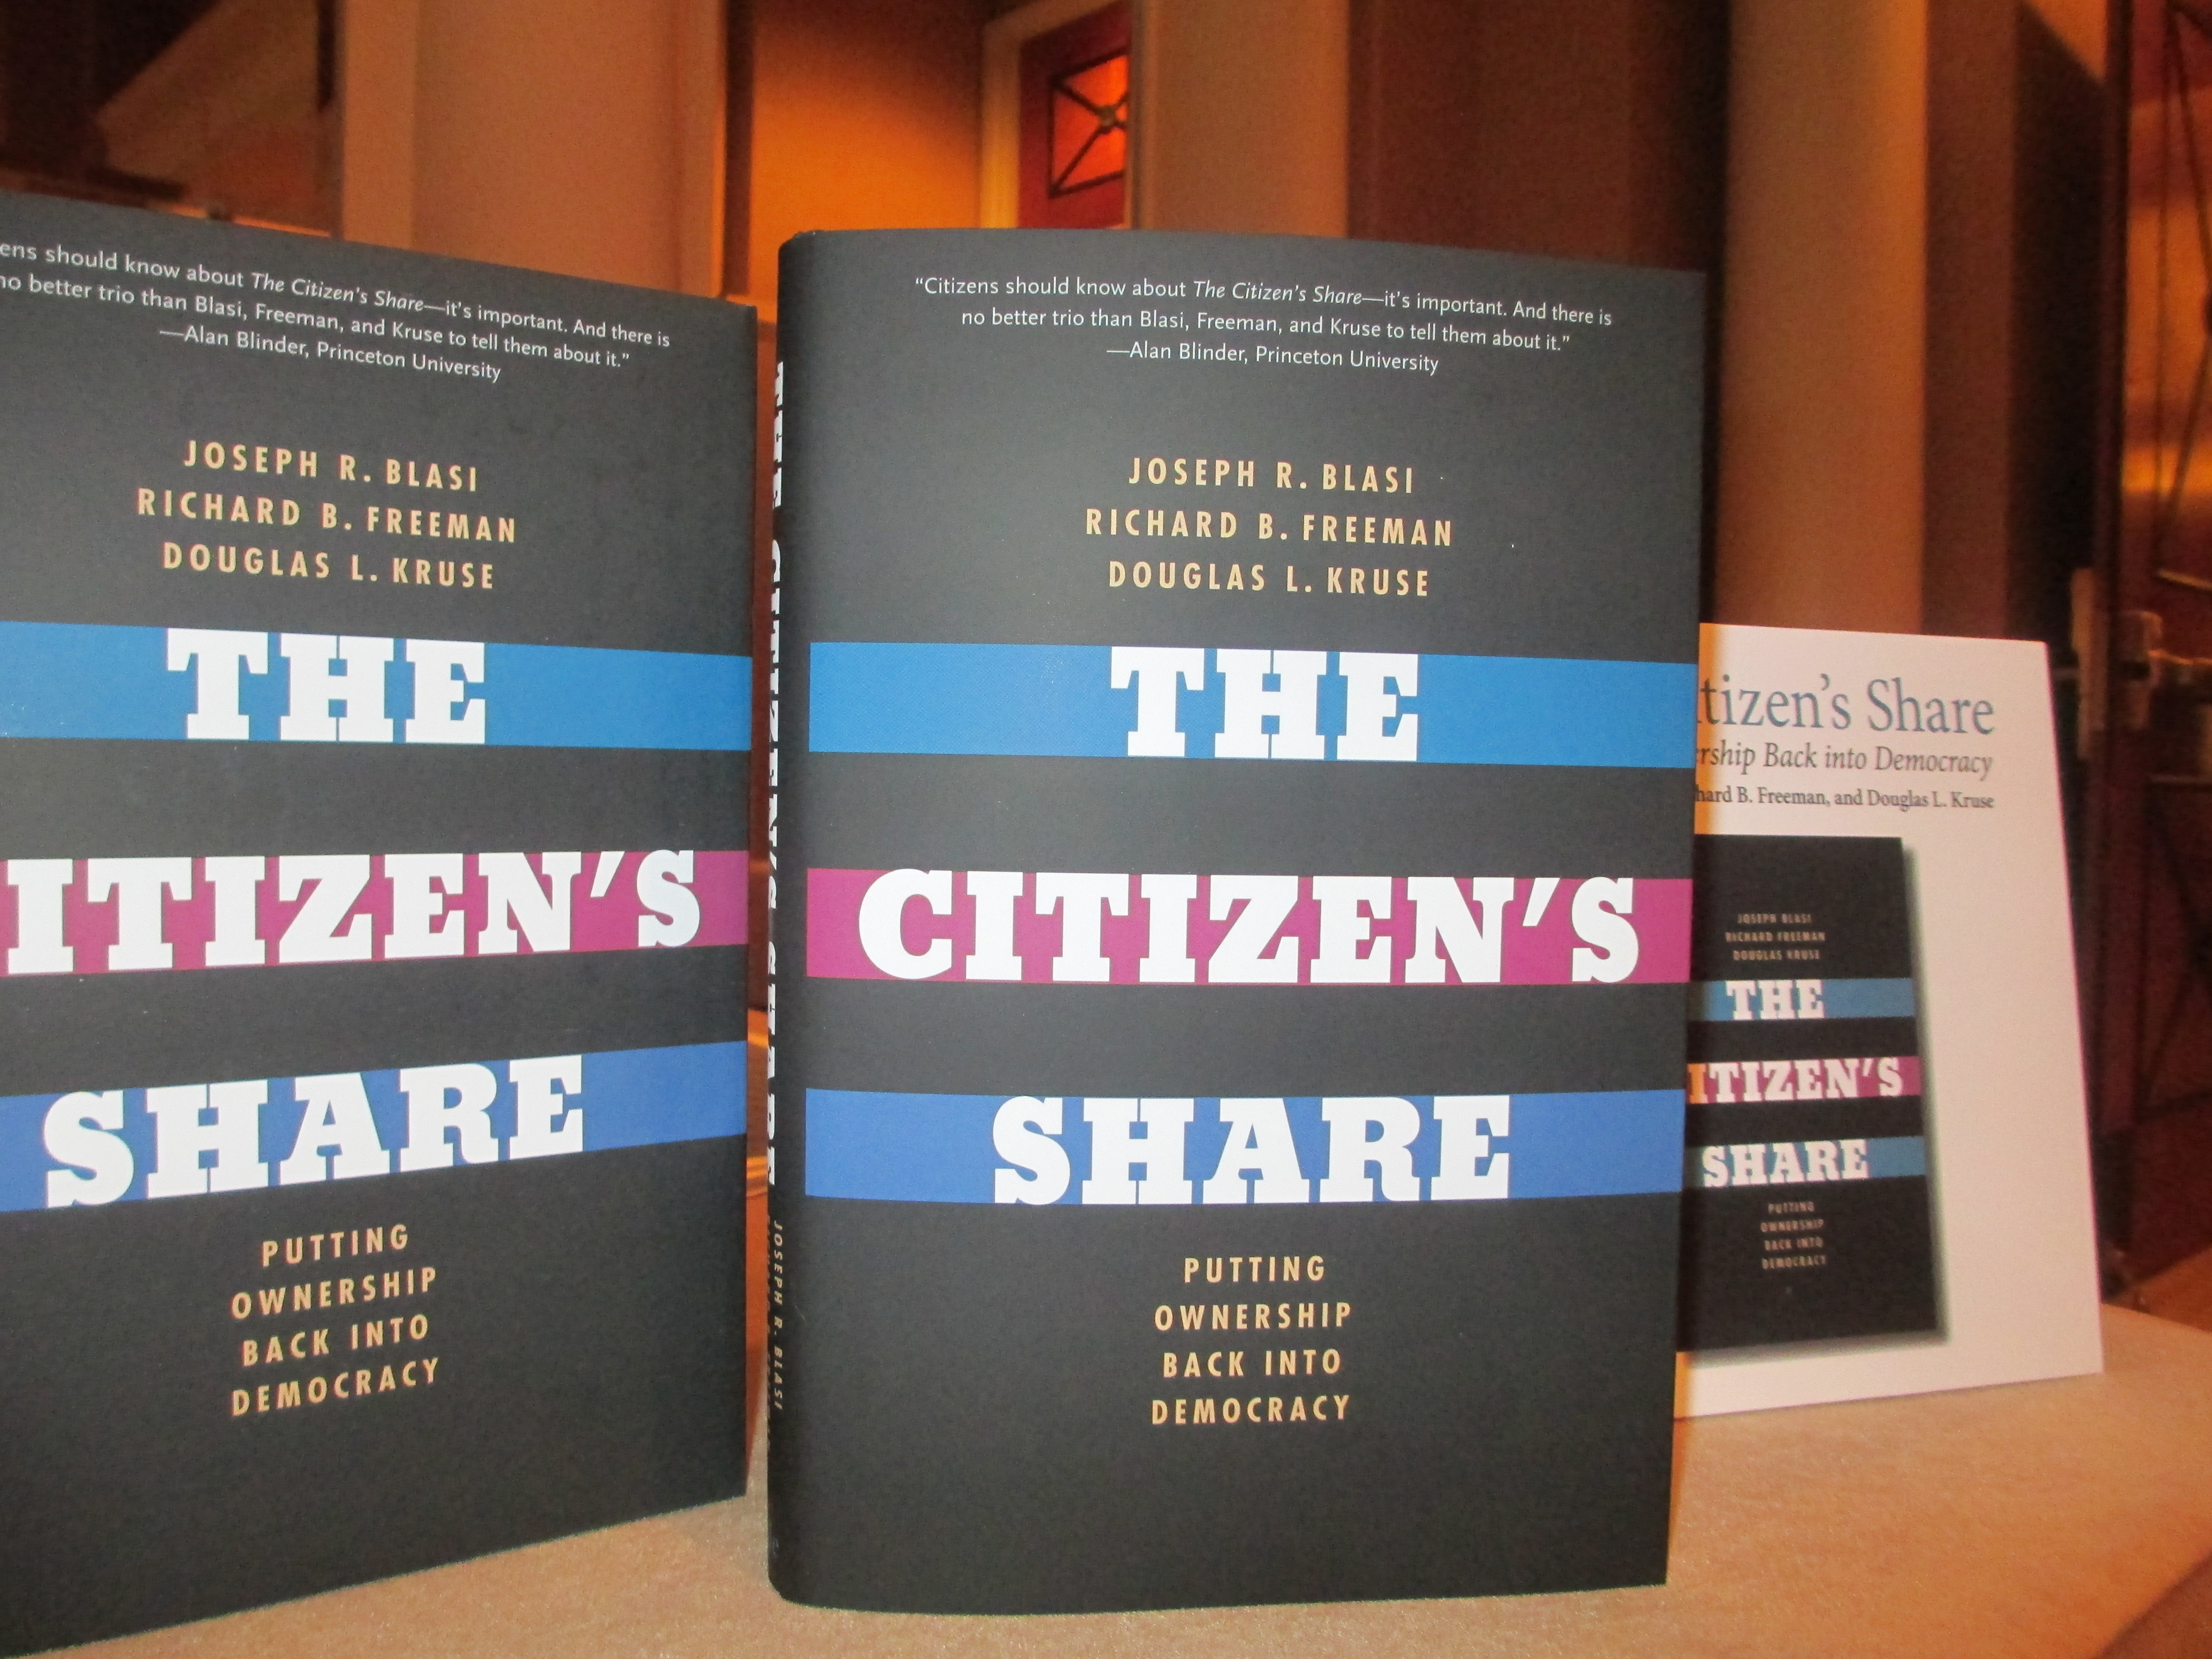 The ownership of citizens - what is it 100